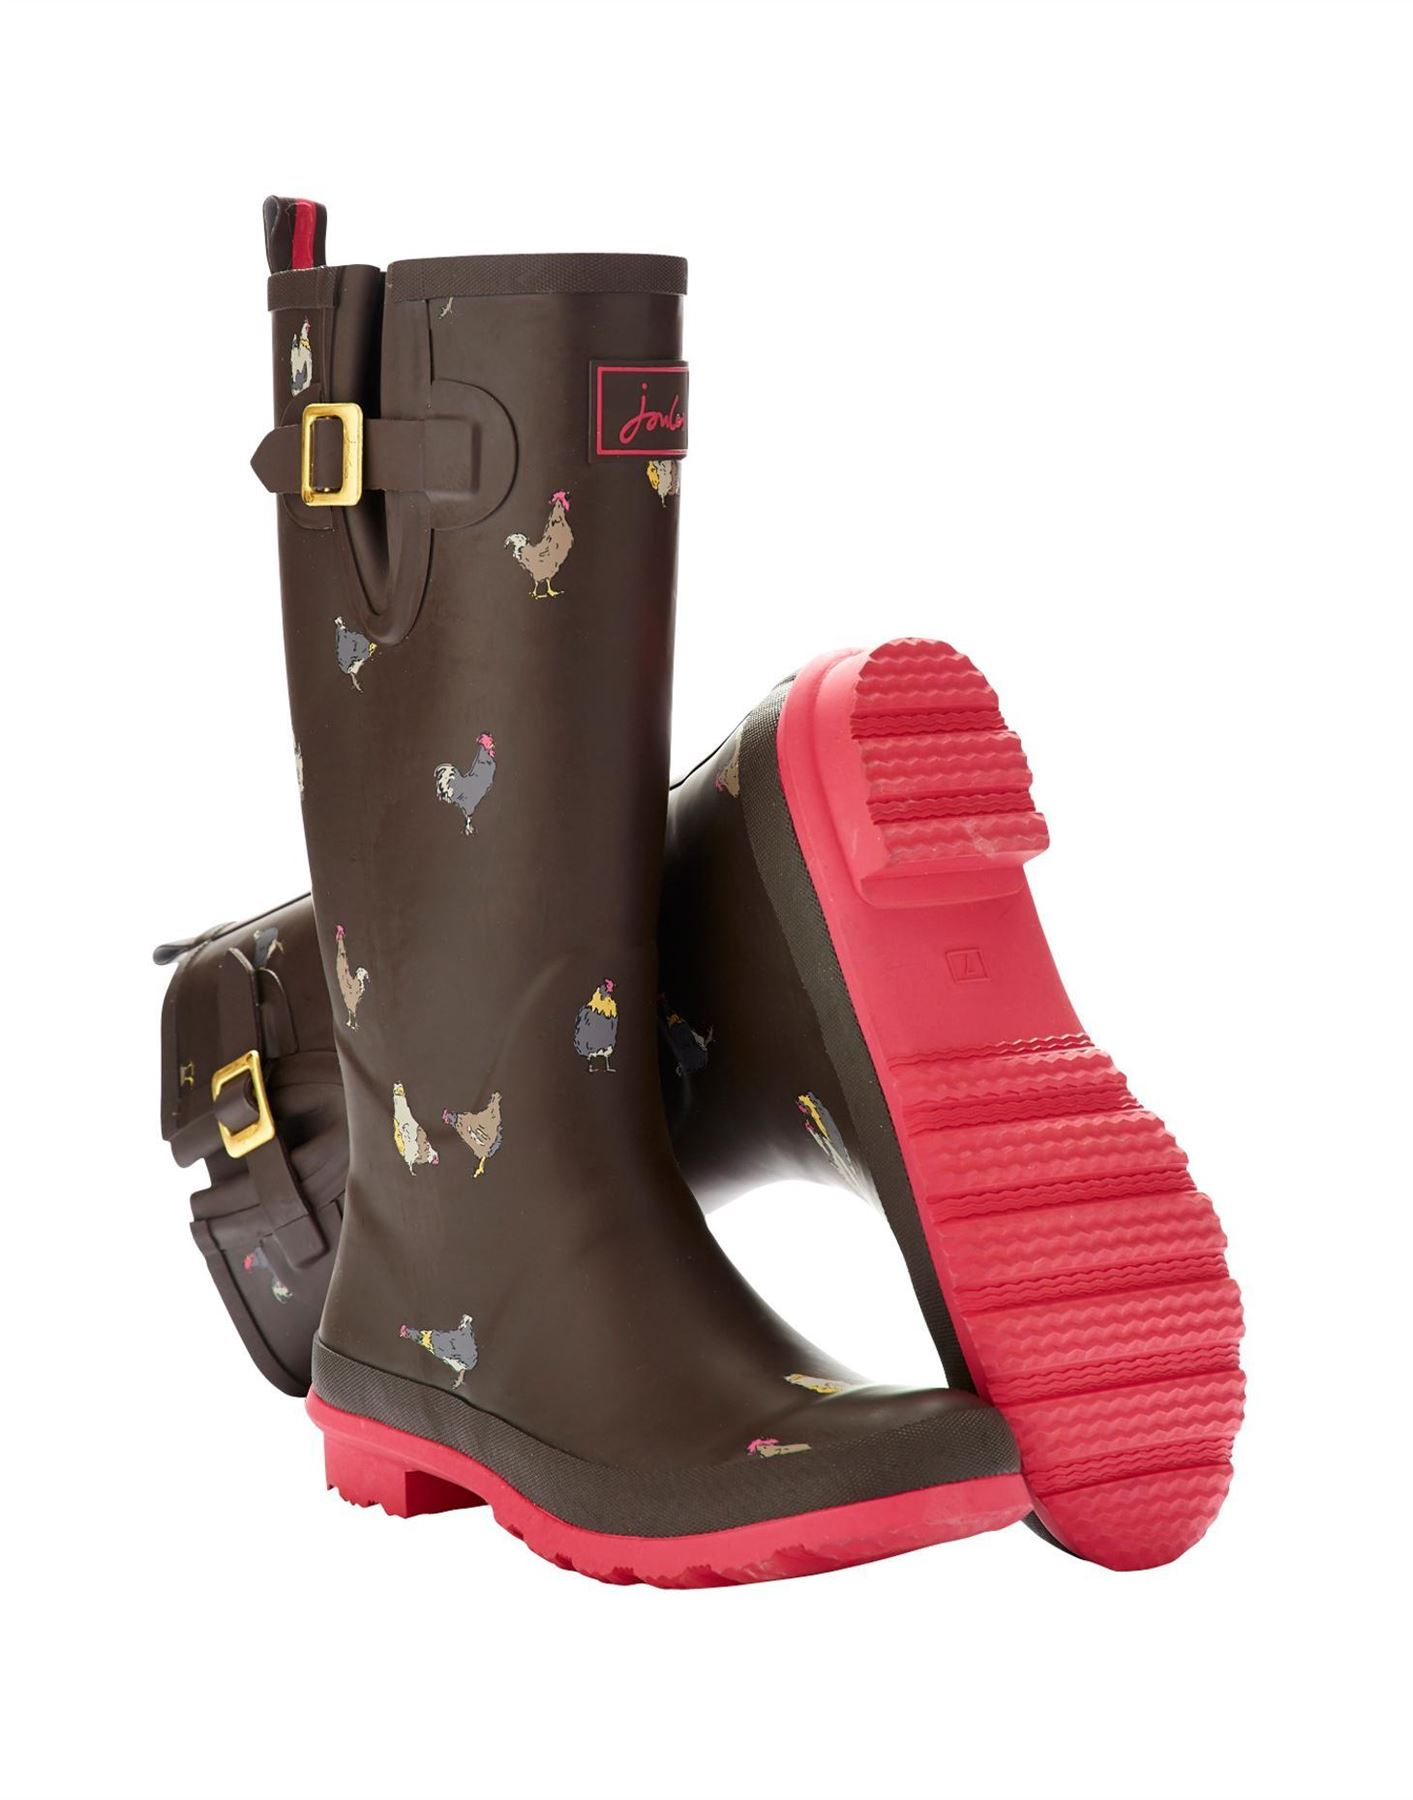 Fantastic Fashion Rain Boots By Sloggers Waterproof Comfortable And Fun Made